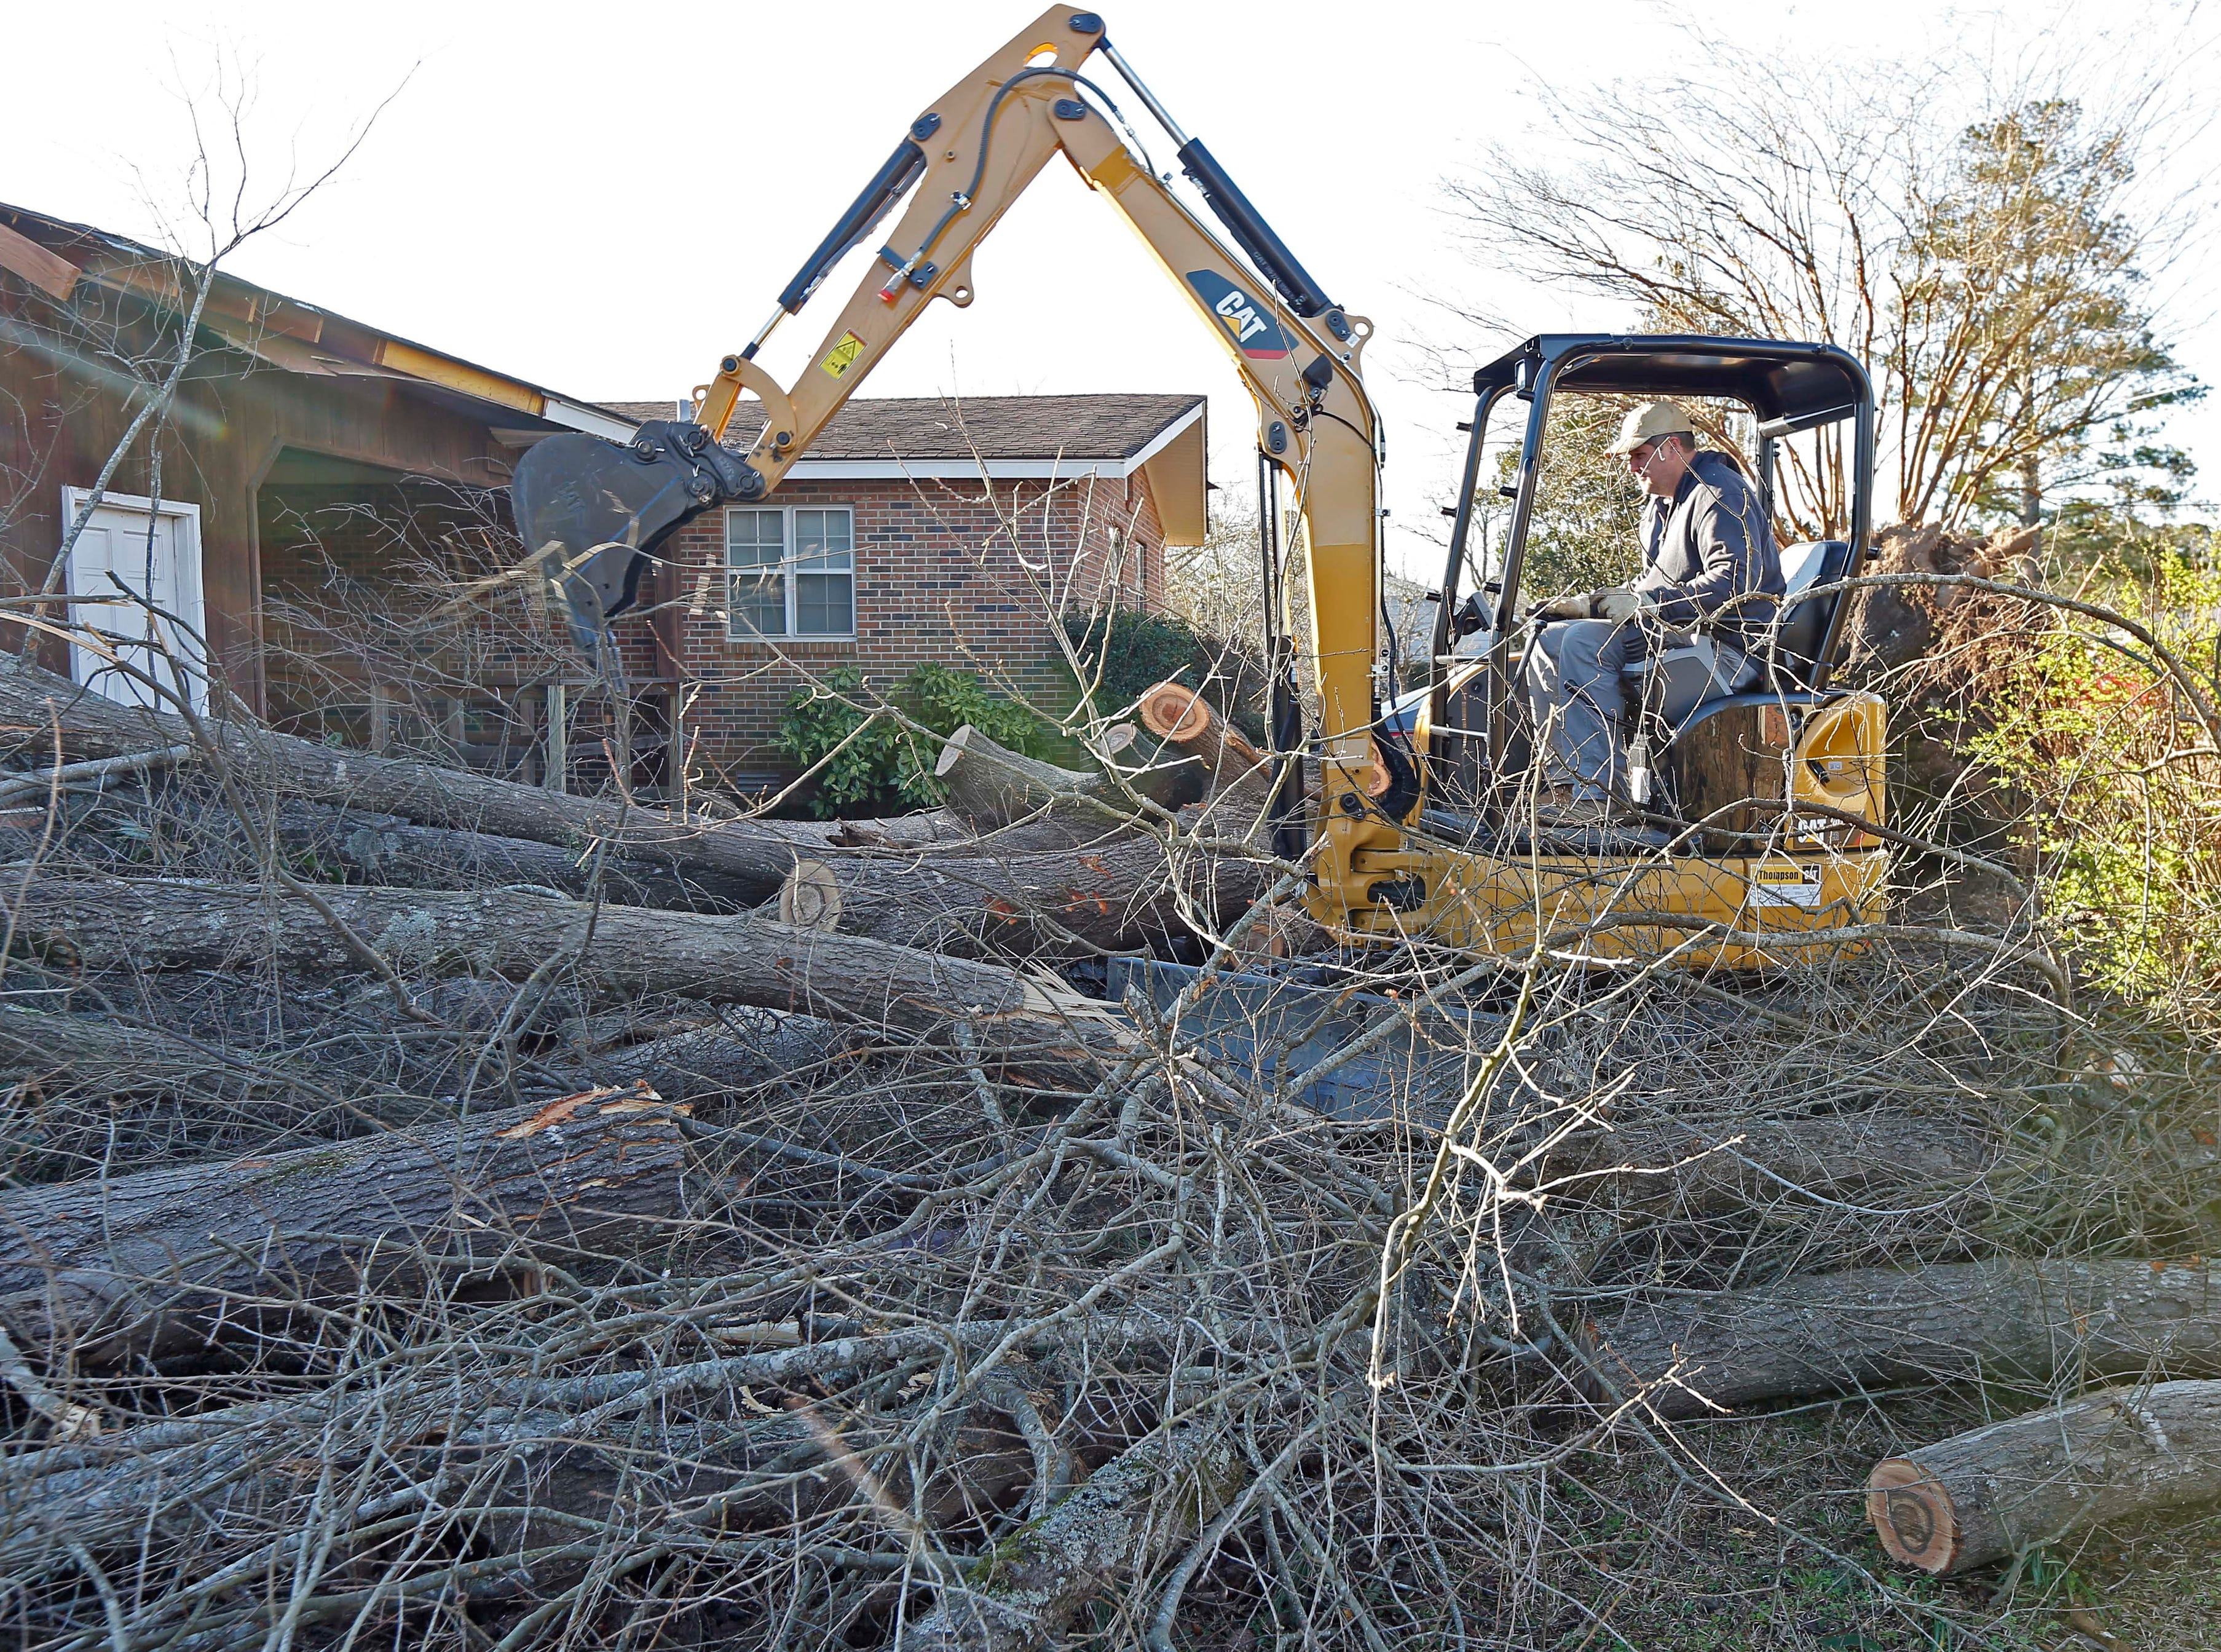 A backhoe is used to removes fallen tree limbs in this Columbus, Miss., neighborhood, Sunday morning, Feb. 24, 2019. At least one person was killed among the shattered businesses and wrecked homes that dotted the South as severe storms followed a weekend of drenching rains and a rising flood threat. (AP Photo/Rogelio V. Solis)